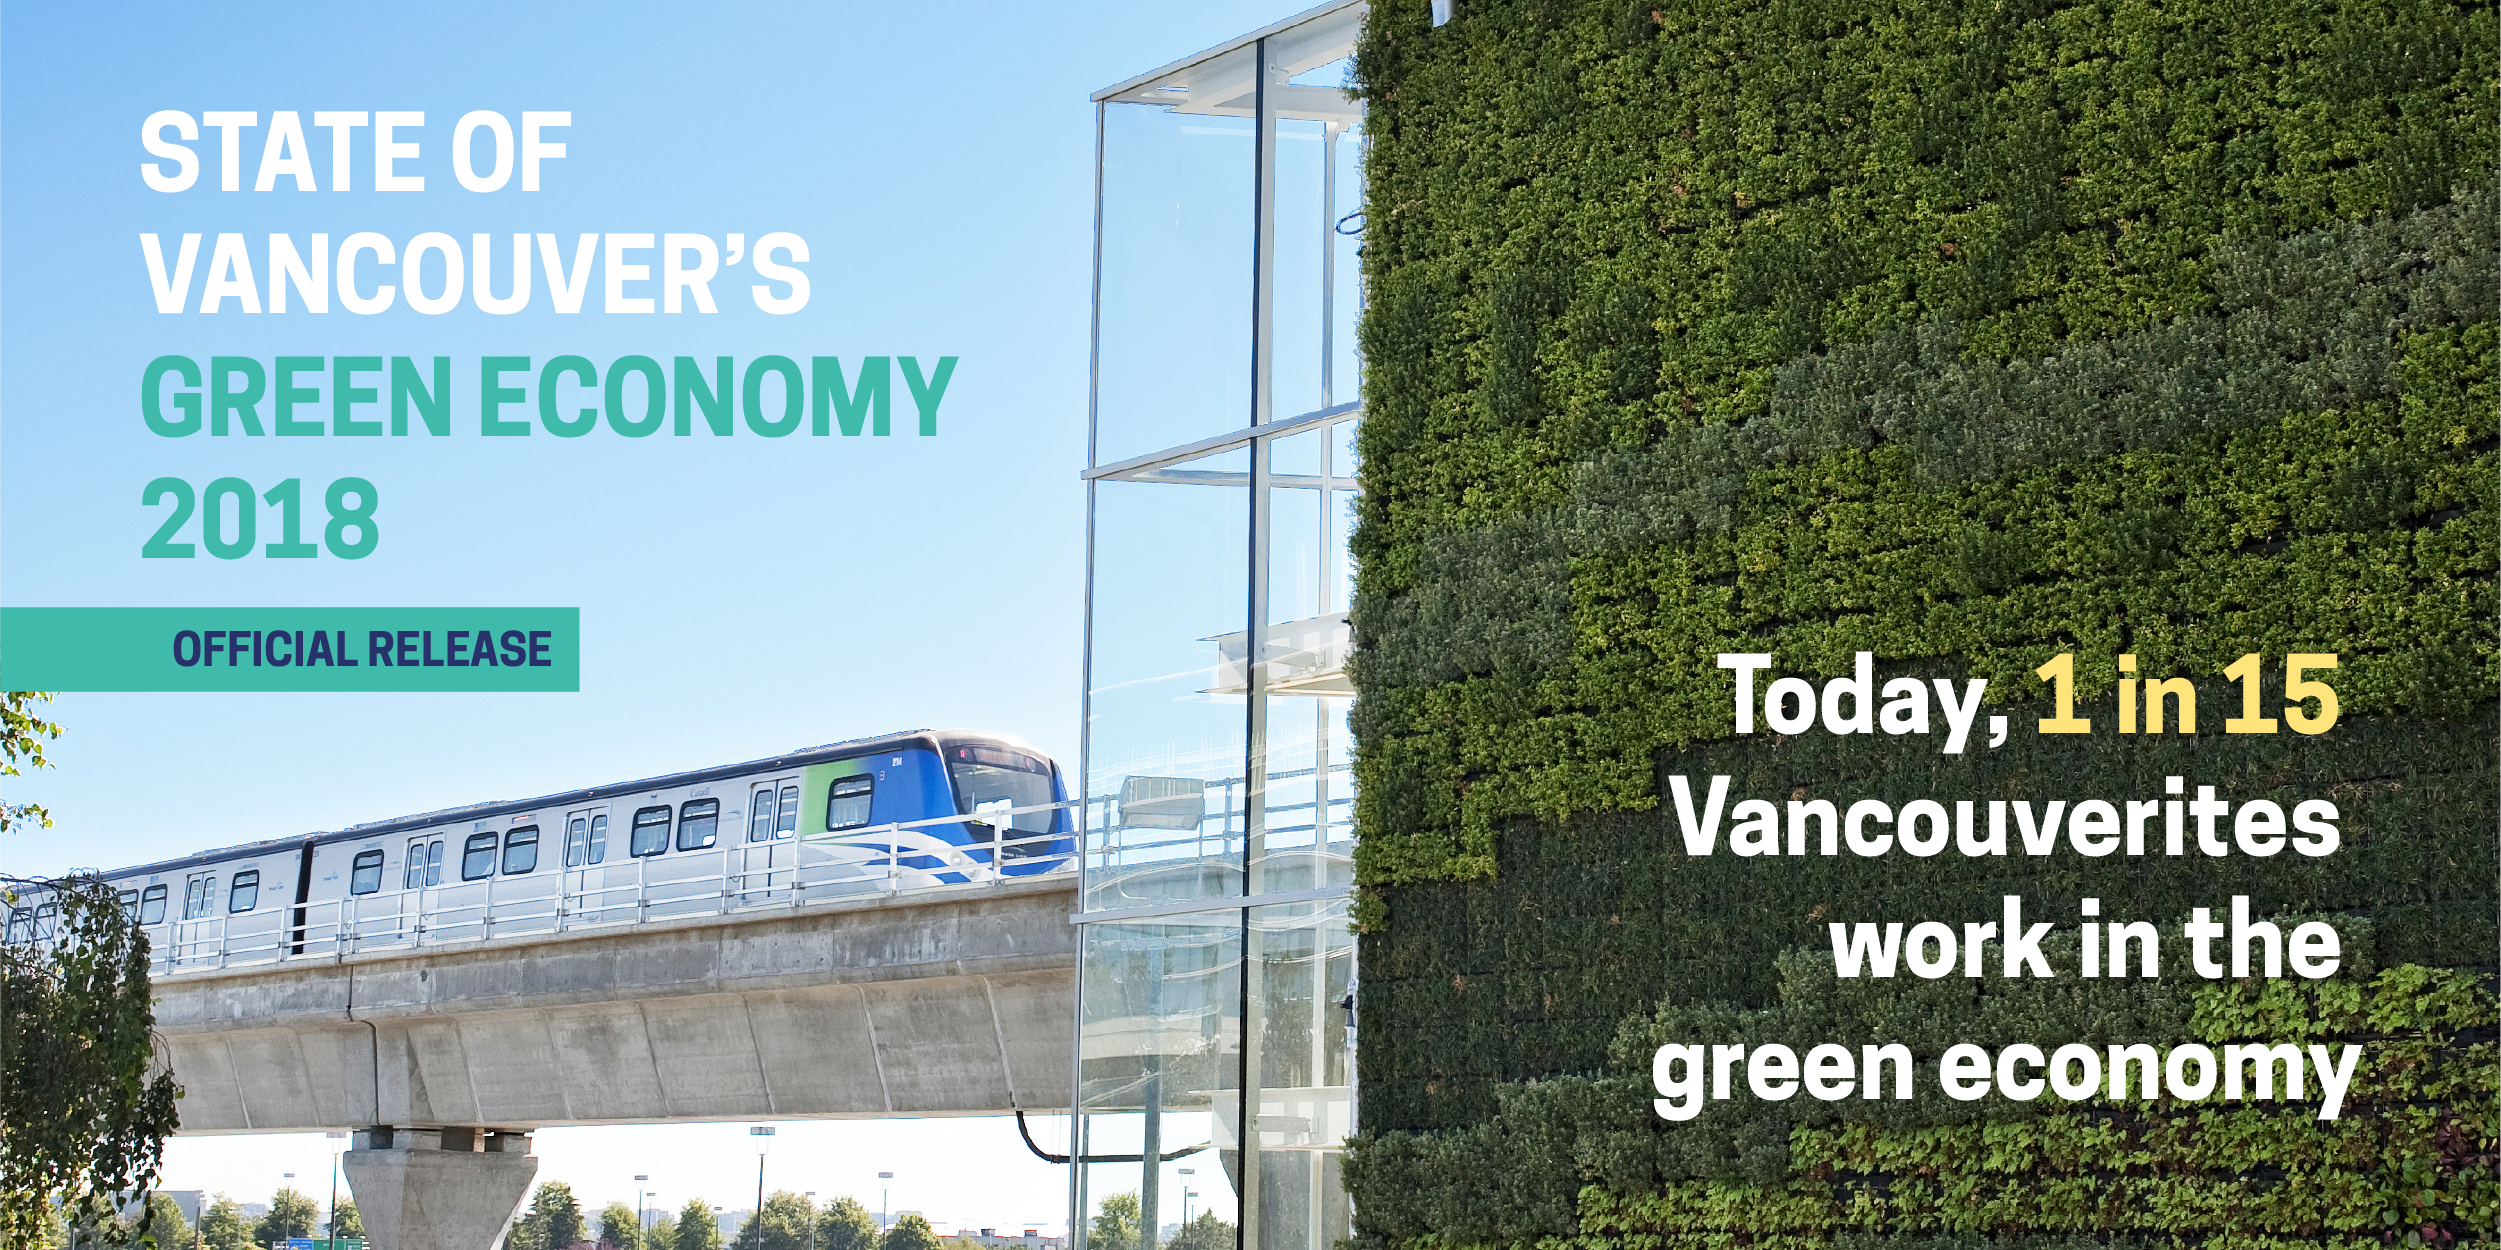 Today, one in 15 Vancouverites works in the green economy. In VEC's State of Vancouver's Green Economy 2018 report, you can read about over 200 leading green businesses making great strides in innovation and the development of low-carbon solutions to traditional and contemporary problems in buildings, energy, mobility and resource management.